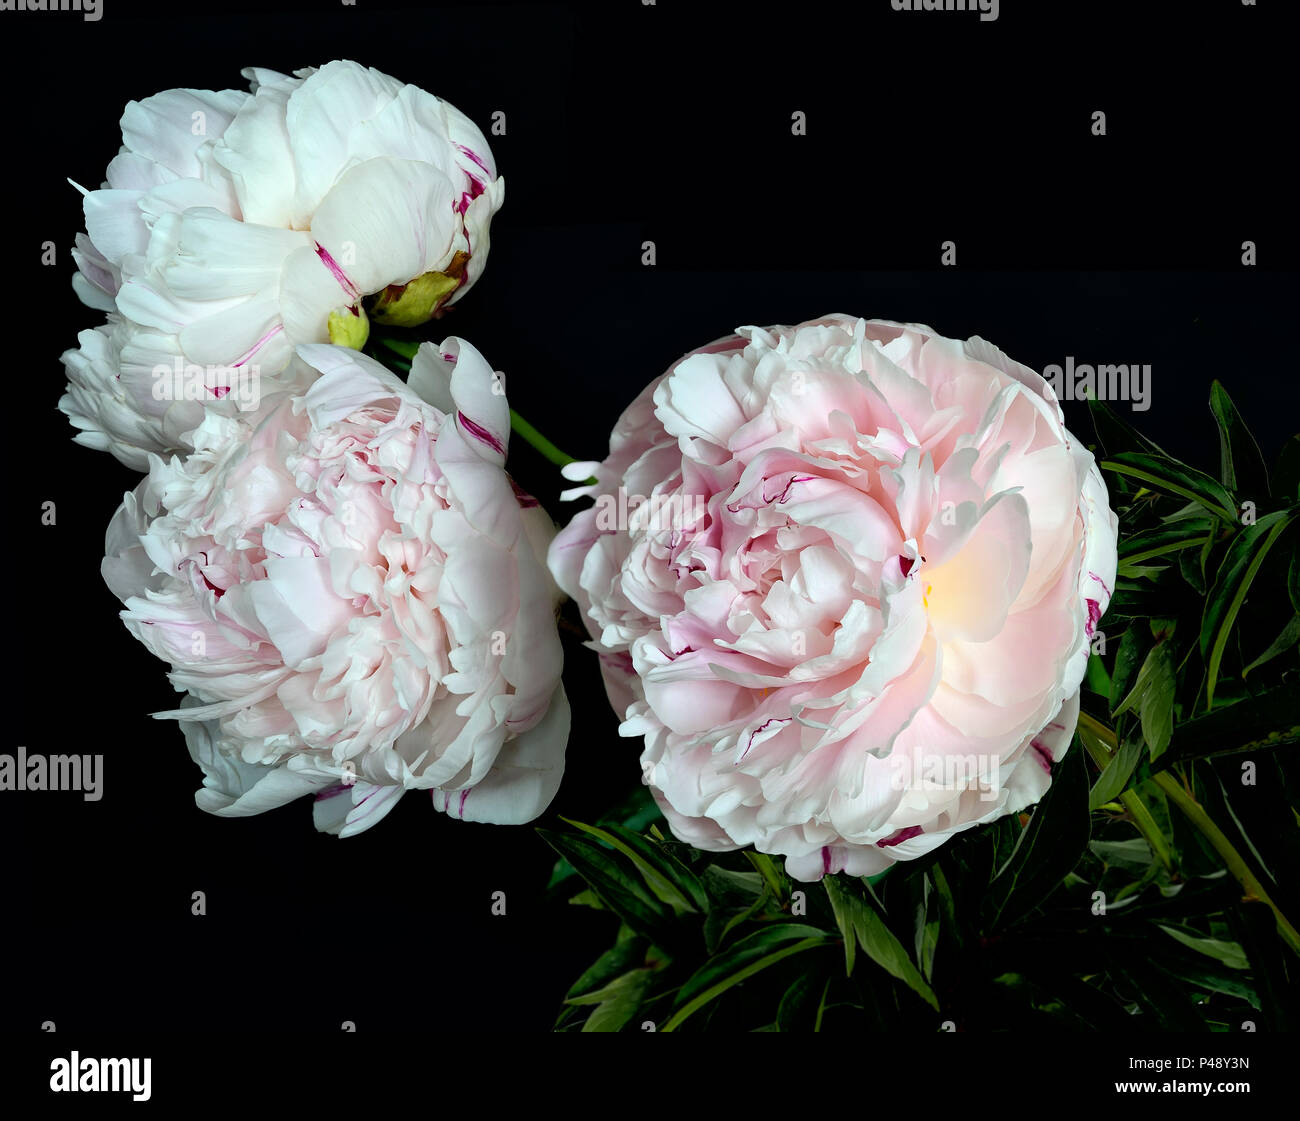 Beautiful bouquet of gentle white-pink peonies close up on a black background isolated with space for text. Flowers with delicate petals and delicate  - Stock Image